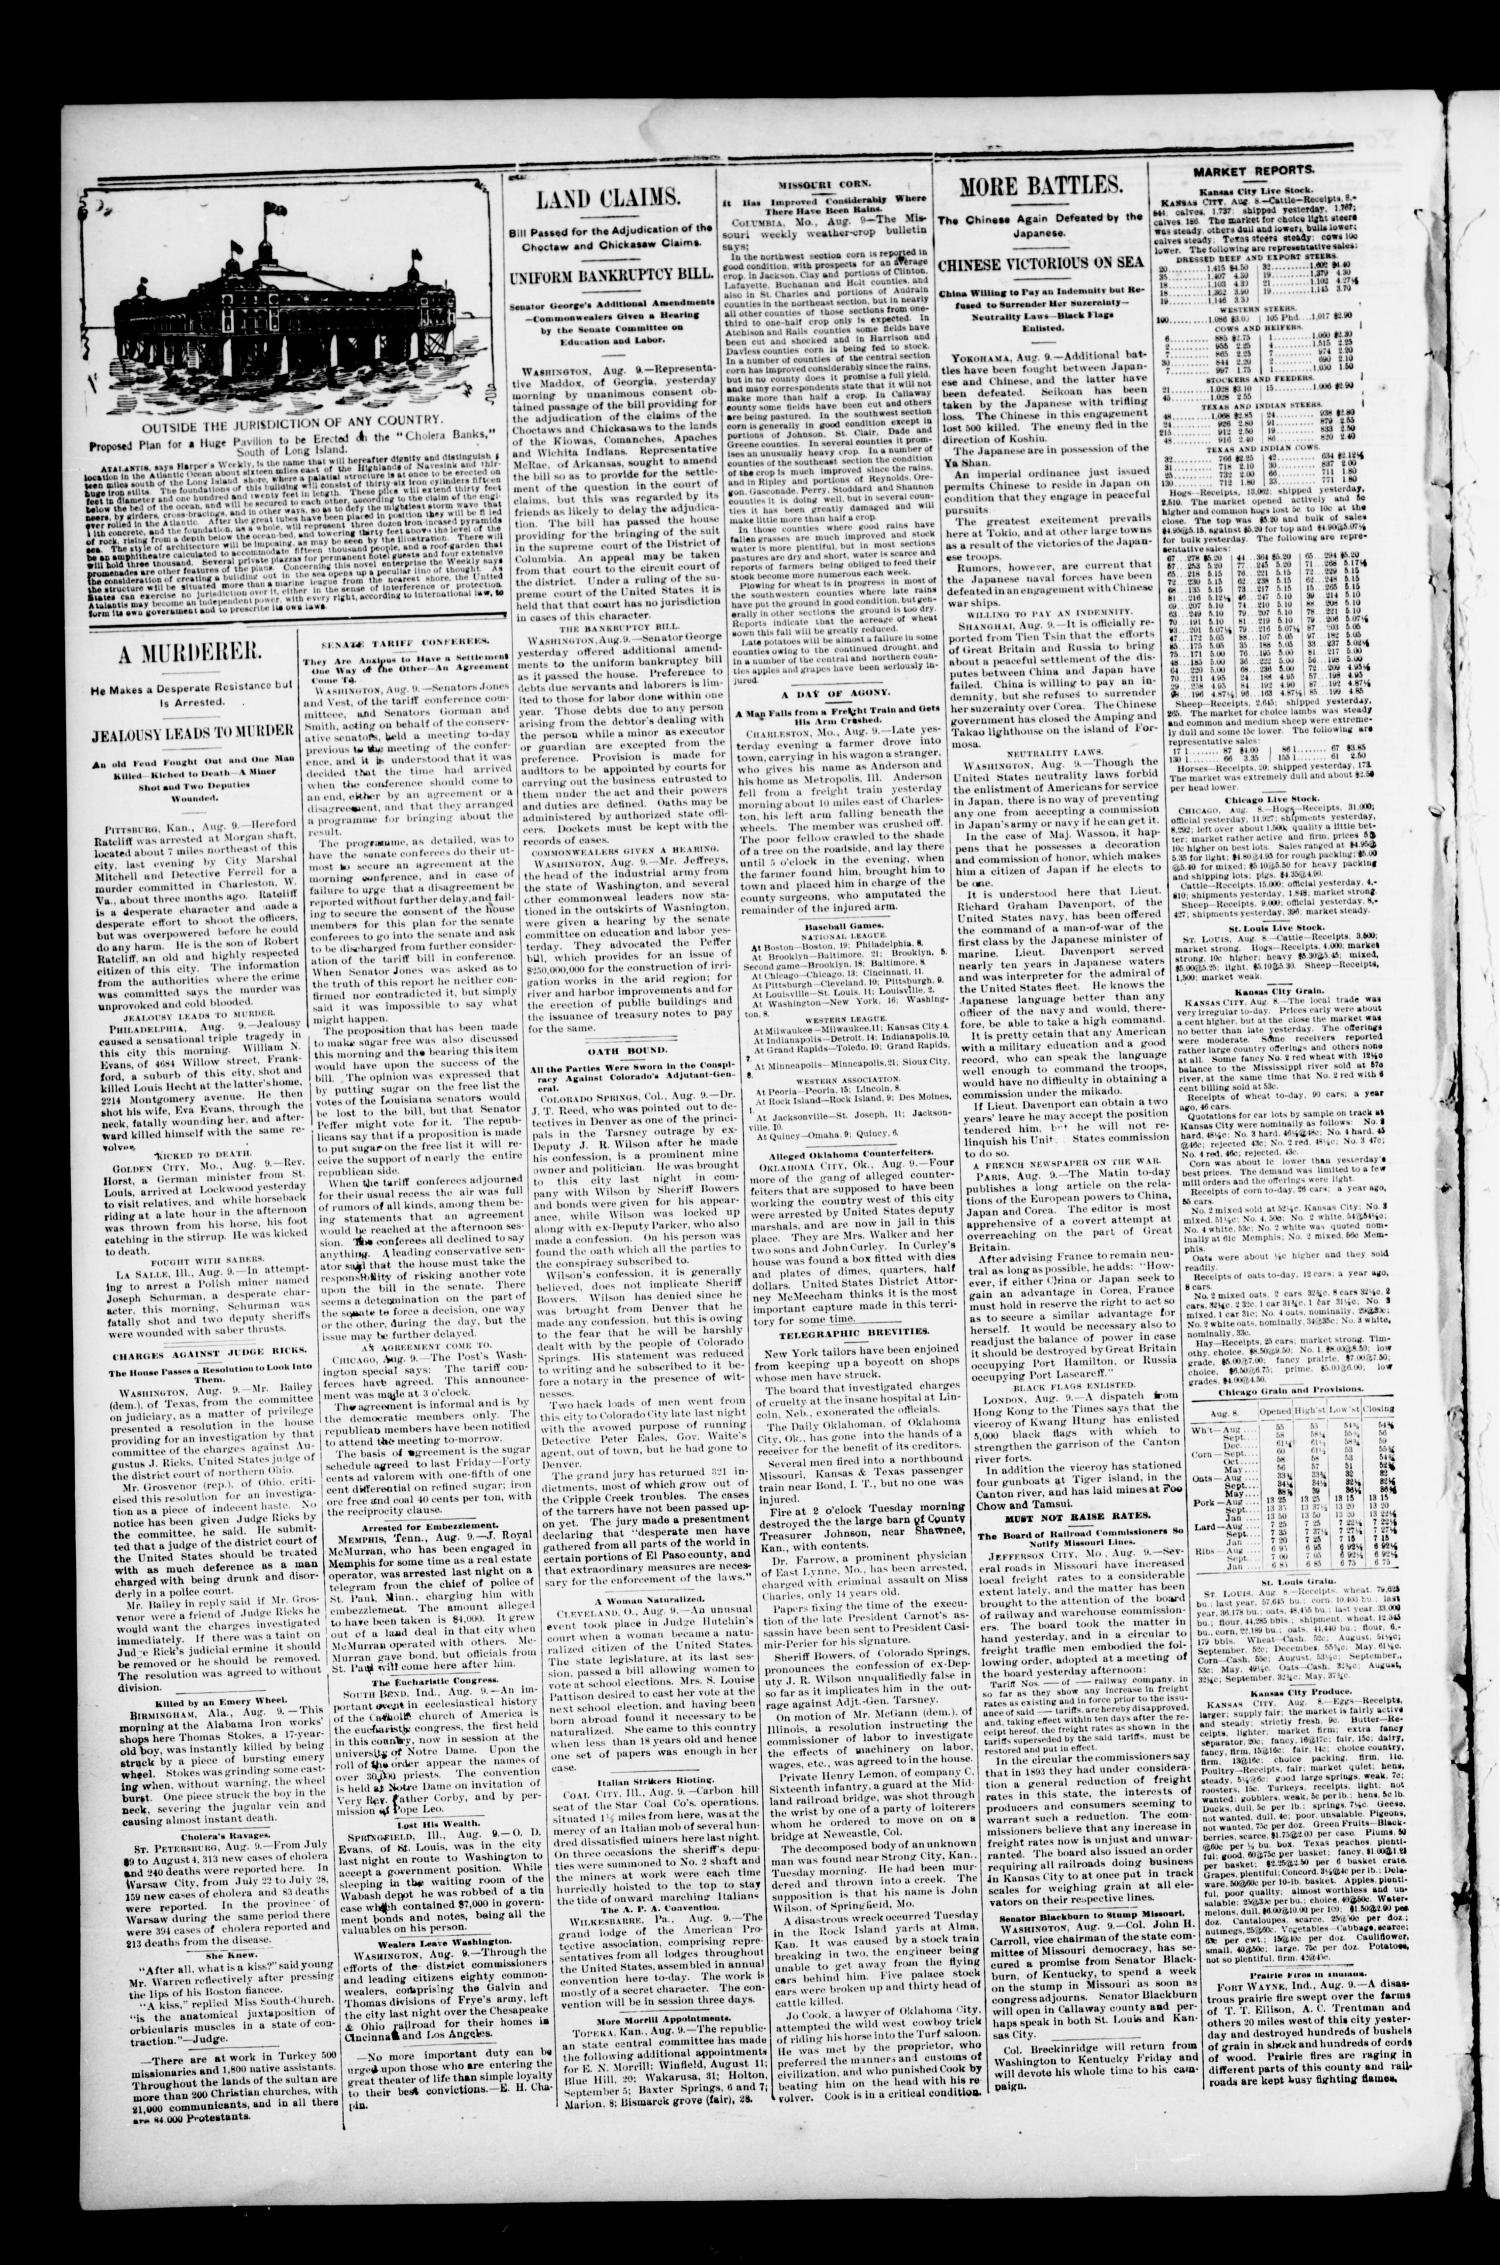 The Perry Daily Times. (Perry, Okla.), Vol. 1, No. 276, Ed. 1 Friday, August 10, 1894                                                                                                      [Sequence #]: 4 of 4